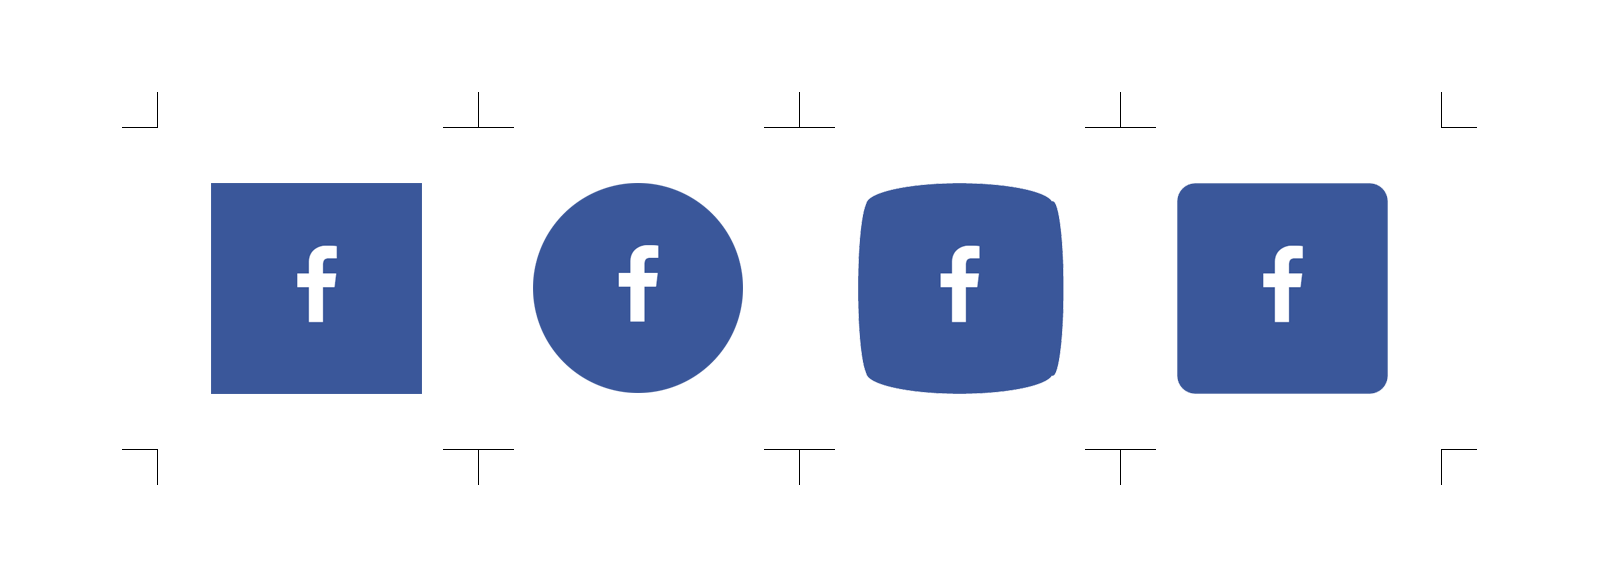 Profitquery like. Facebook share button png graphic royalty free stock